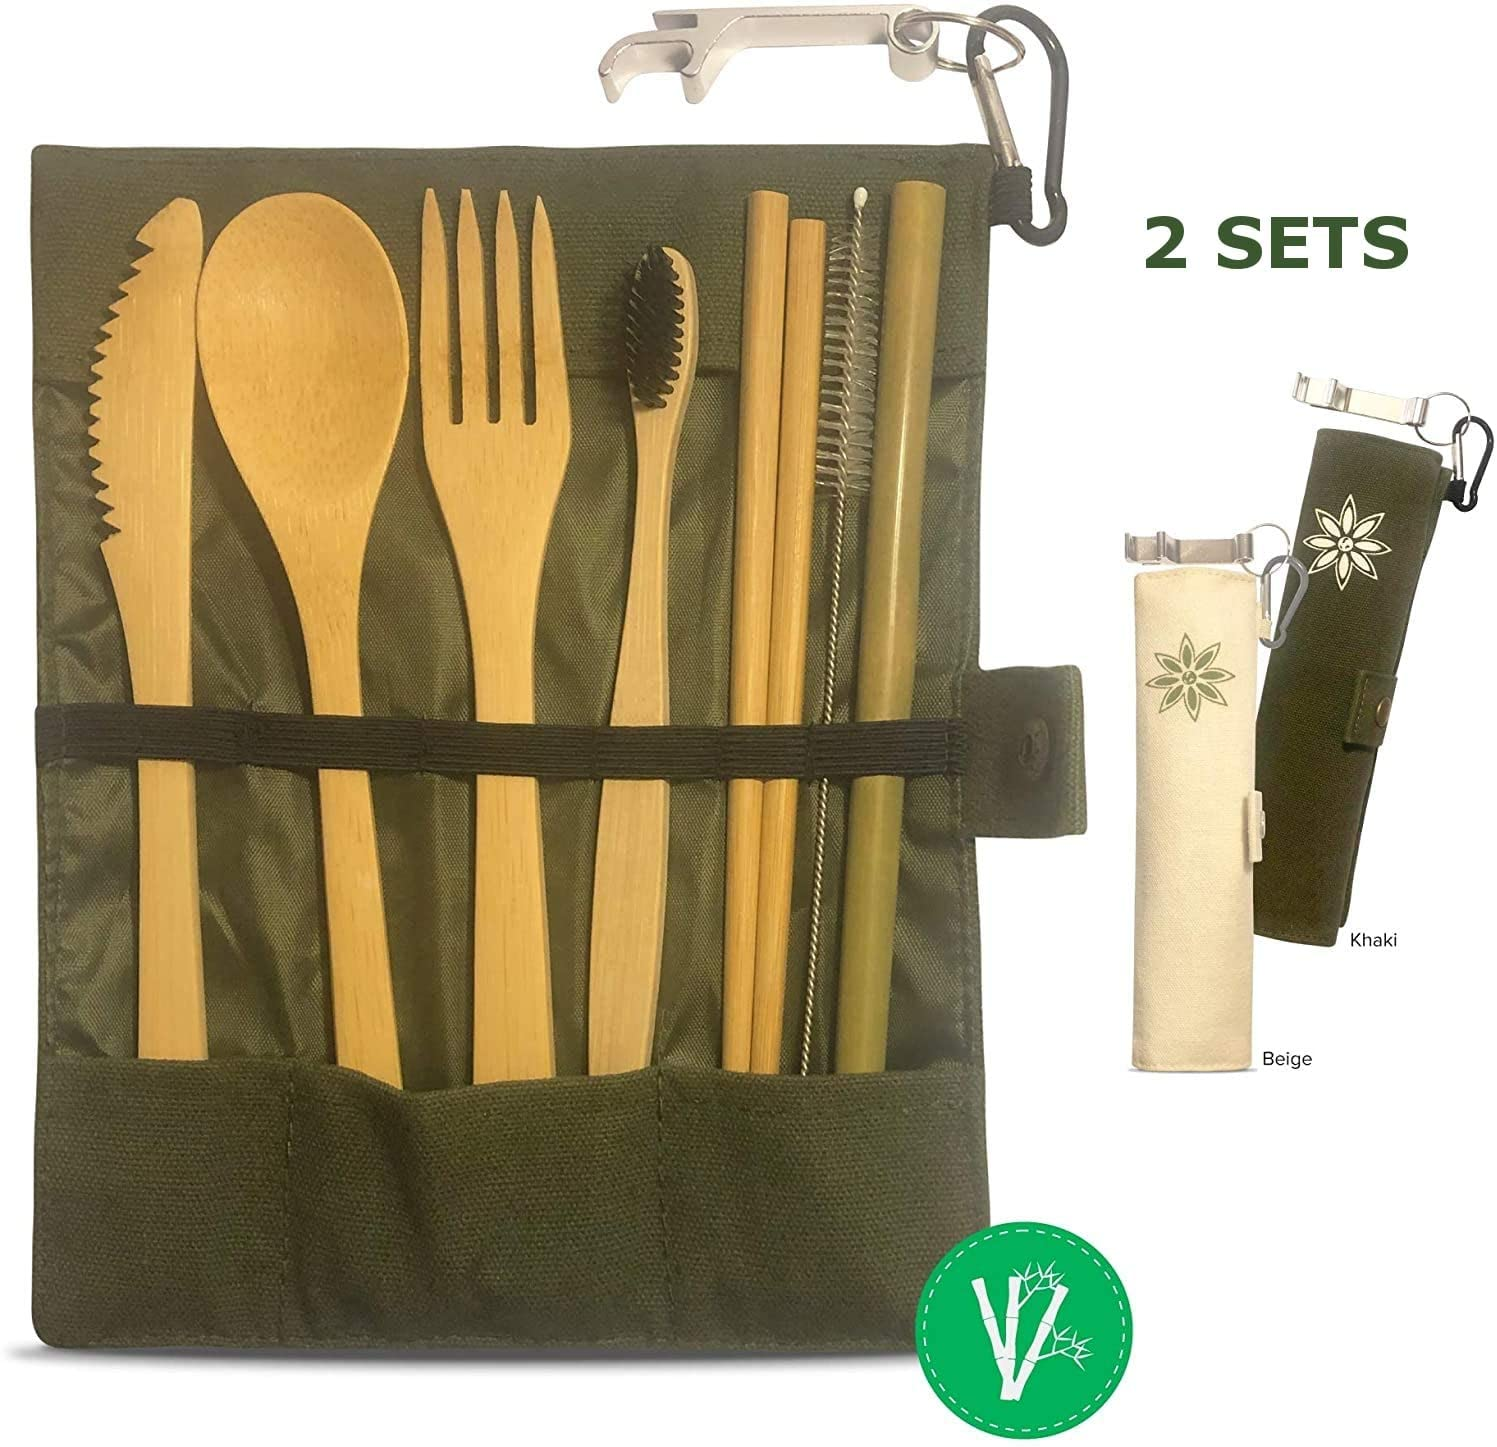 Reusable Bamboo Utensils 2 Sets with Cases - Travel Cutlery, To Go Where Bamboo Utensils, Silverware Eco Friendly, Fork Knife Spoon Straw Chopsticks Toothbrush